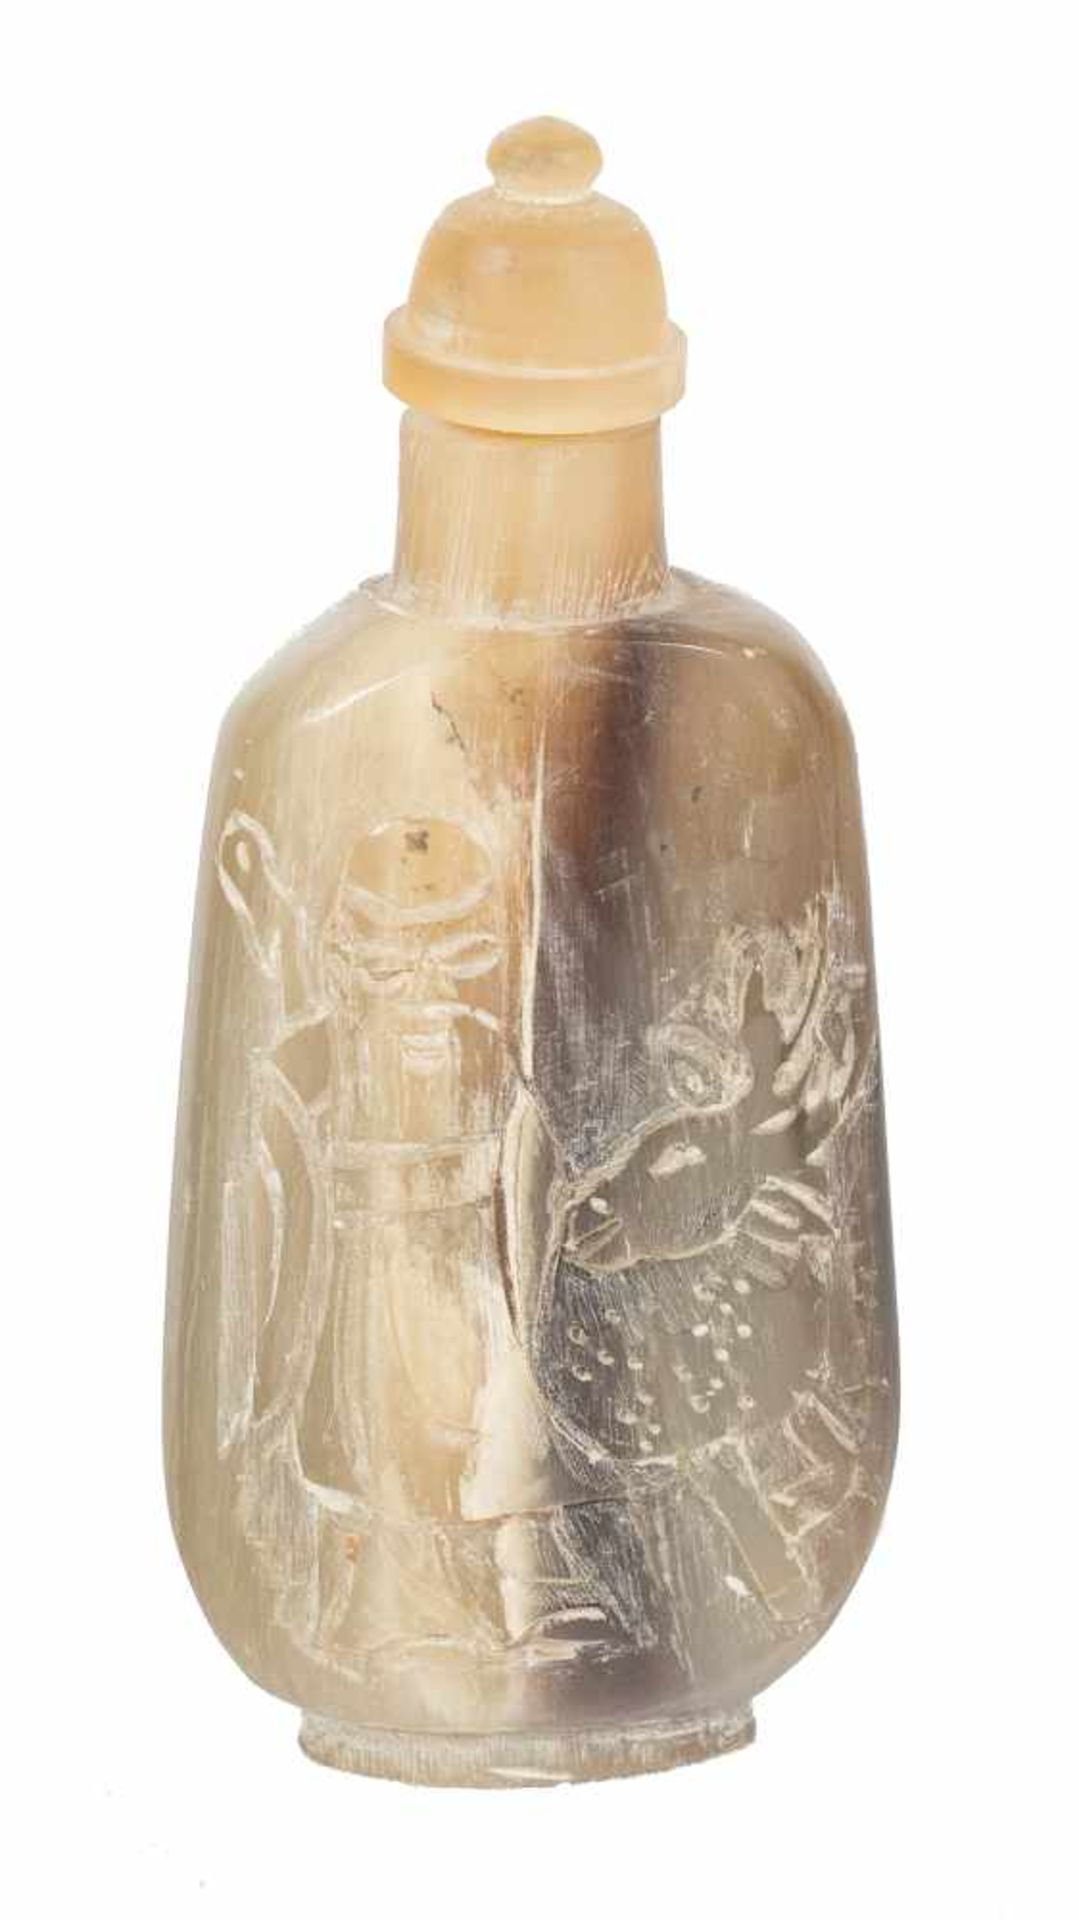 Los 12 - A fine Chinese snuff bottle in carved rhinoceros horn. Qing dynasty. 19th. Century.Height: 7,3